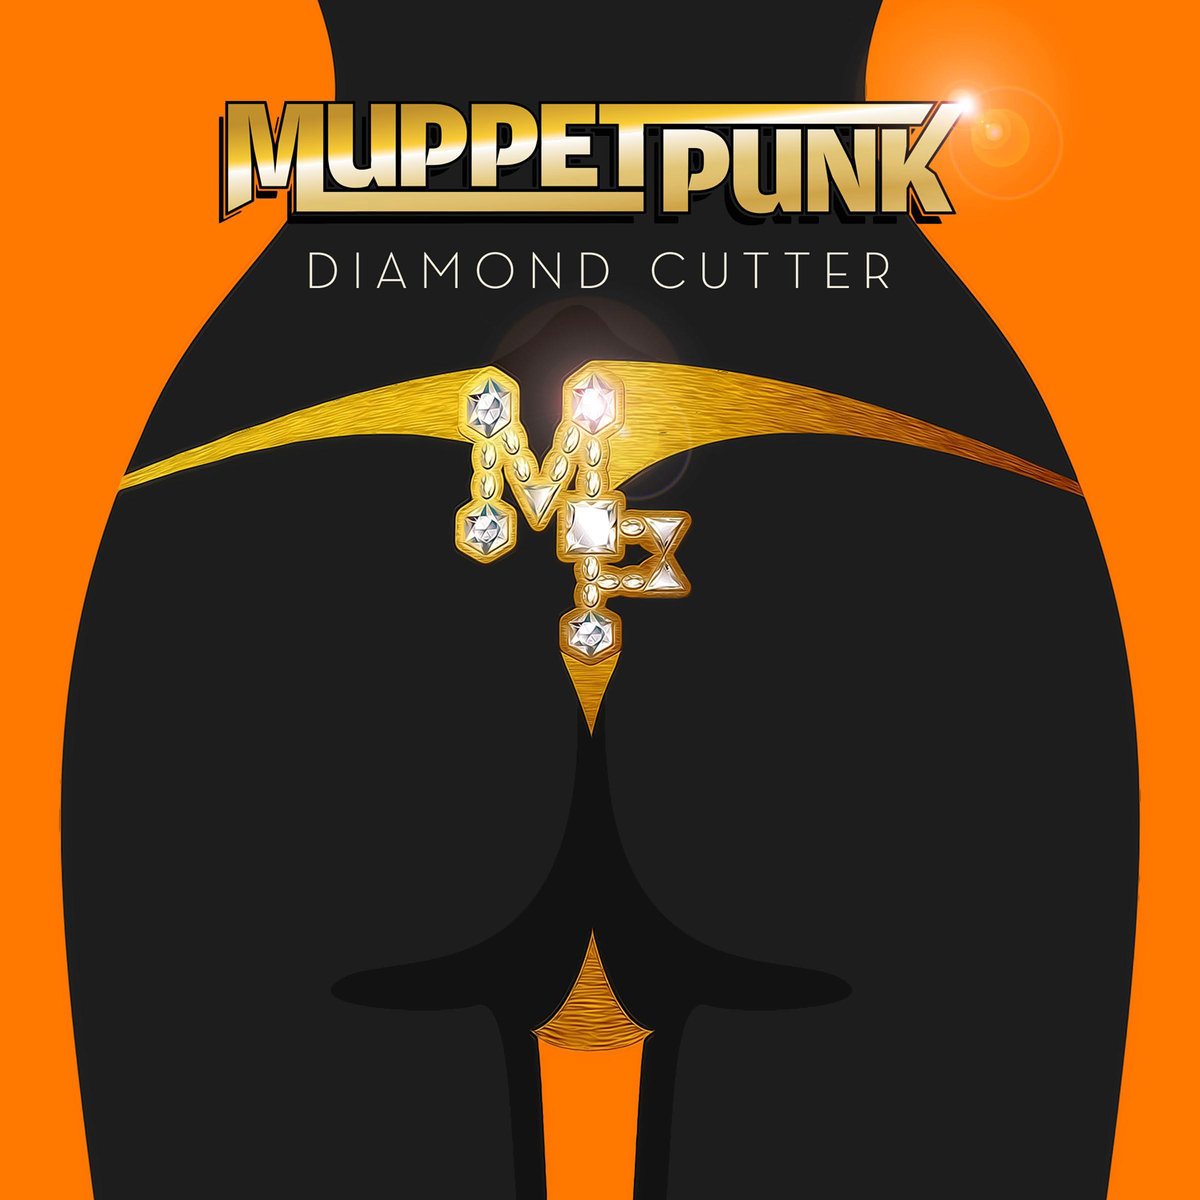 Muppet Punk - Diamond Cutters @ 'Diamond Cutters' album (bass, devi genuone)